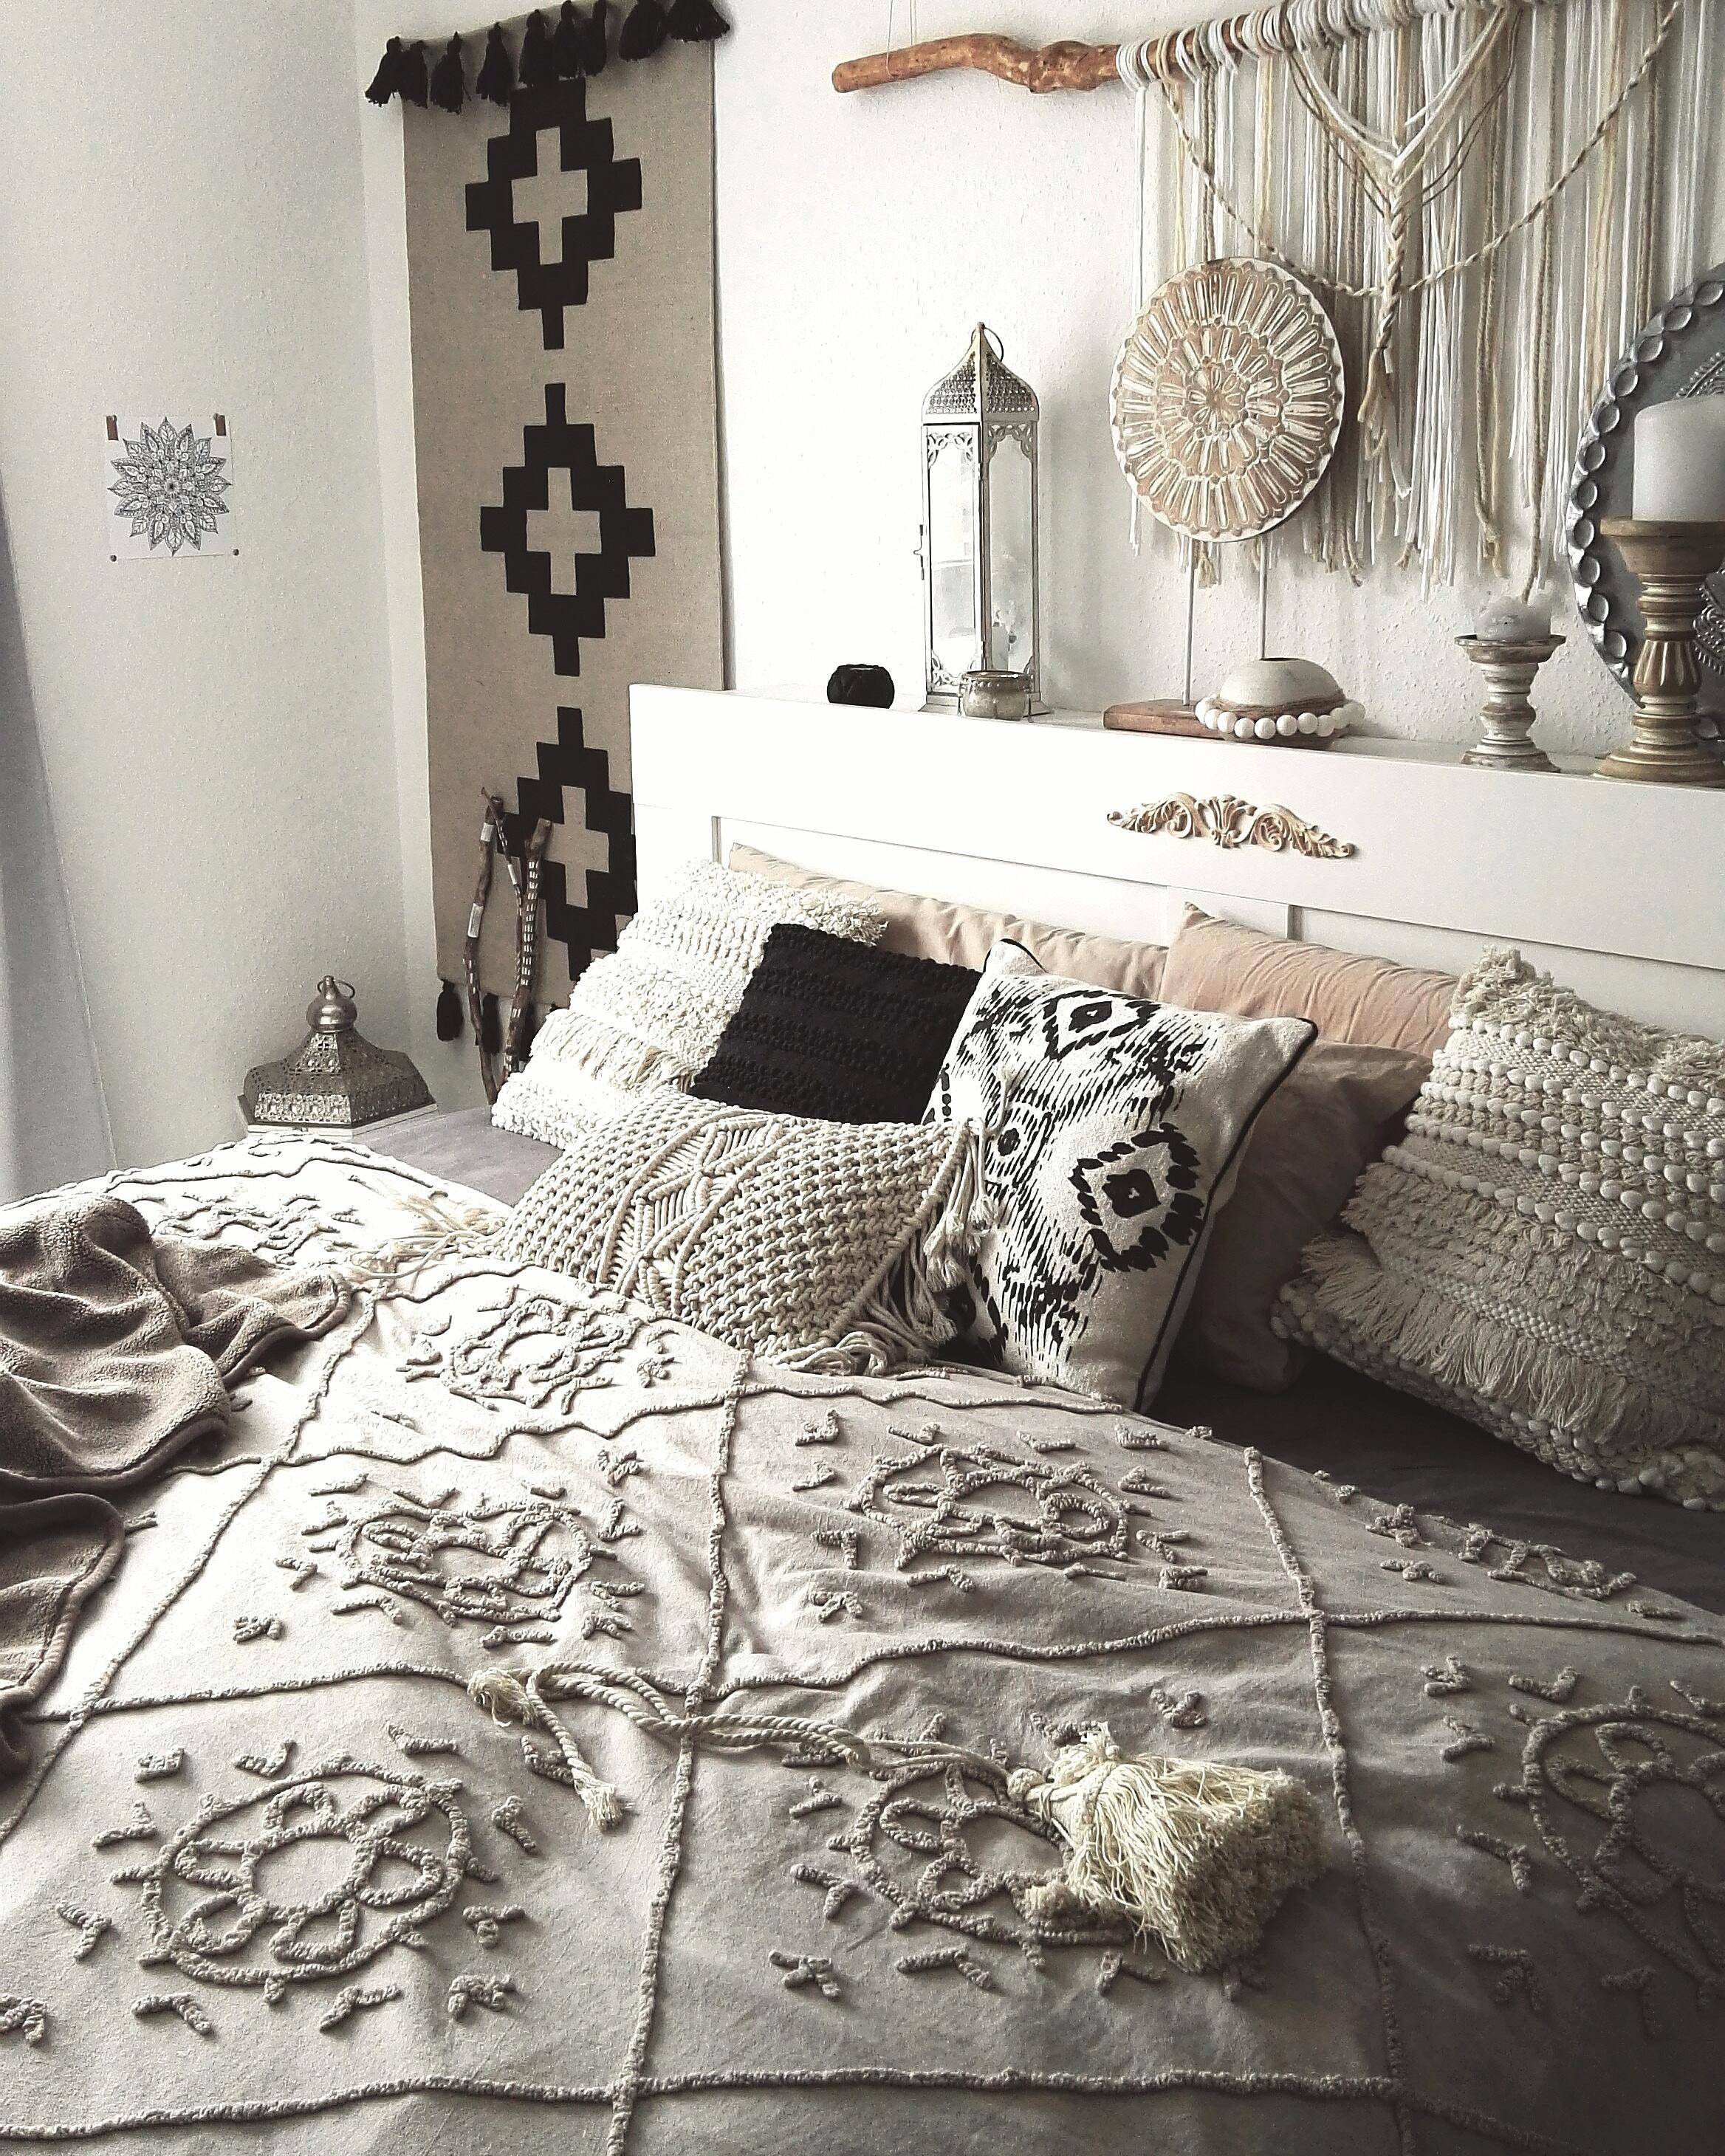 Emejing Bohemian Style Schlafzimmer Weiss Images - Home Design ...